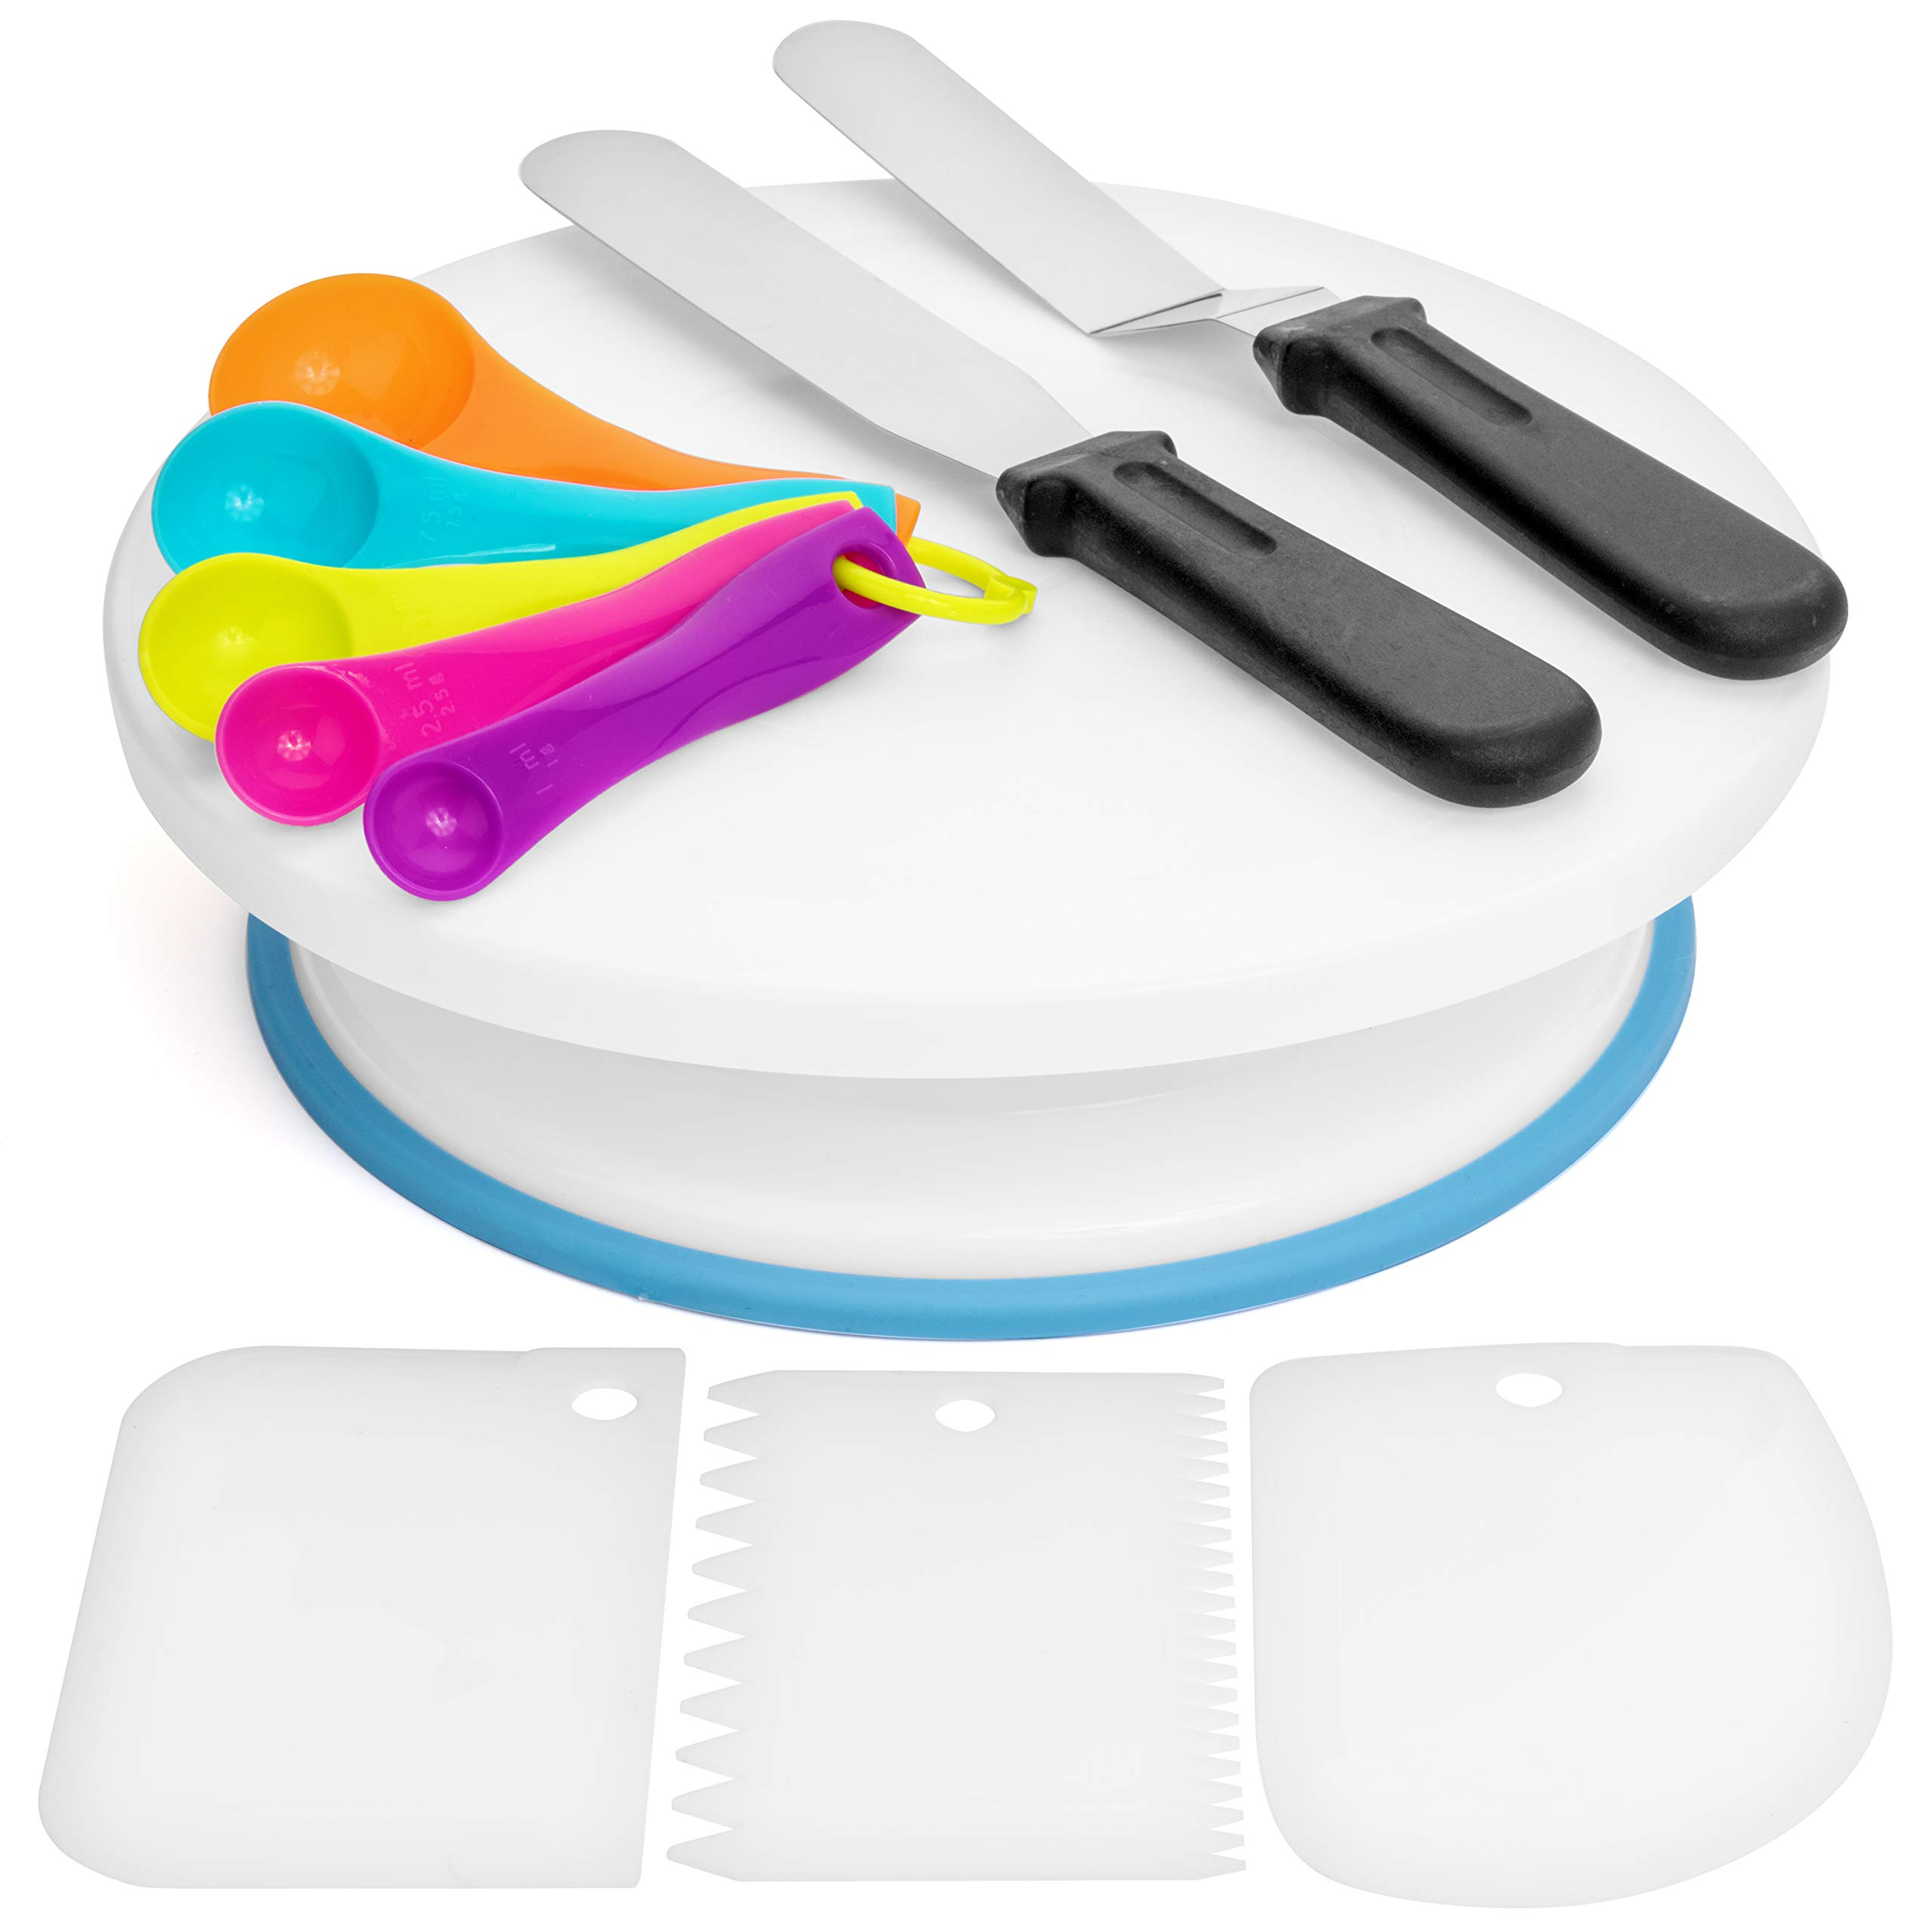 Cake Decorating Supplies Kit by The Unruly Bear - 100+ pc Baking tools set includes turntable stand, piping bags, stainless numbered Icing and Russian tips with coupler, measuring spoons, and MORE! by The Unruly Bear (Image #4)